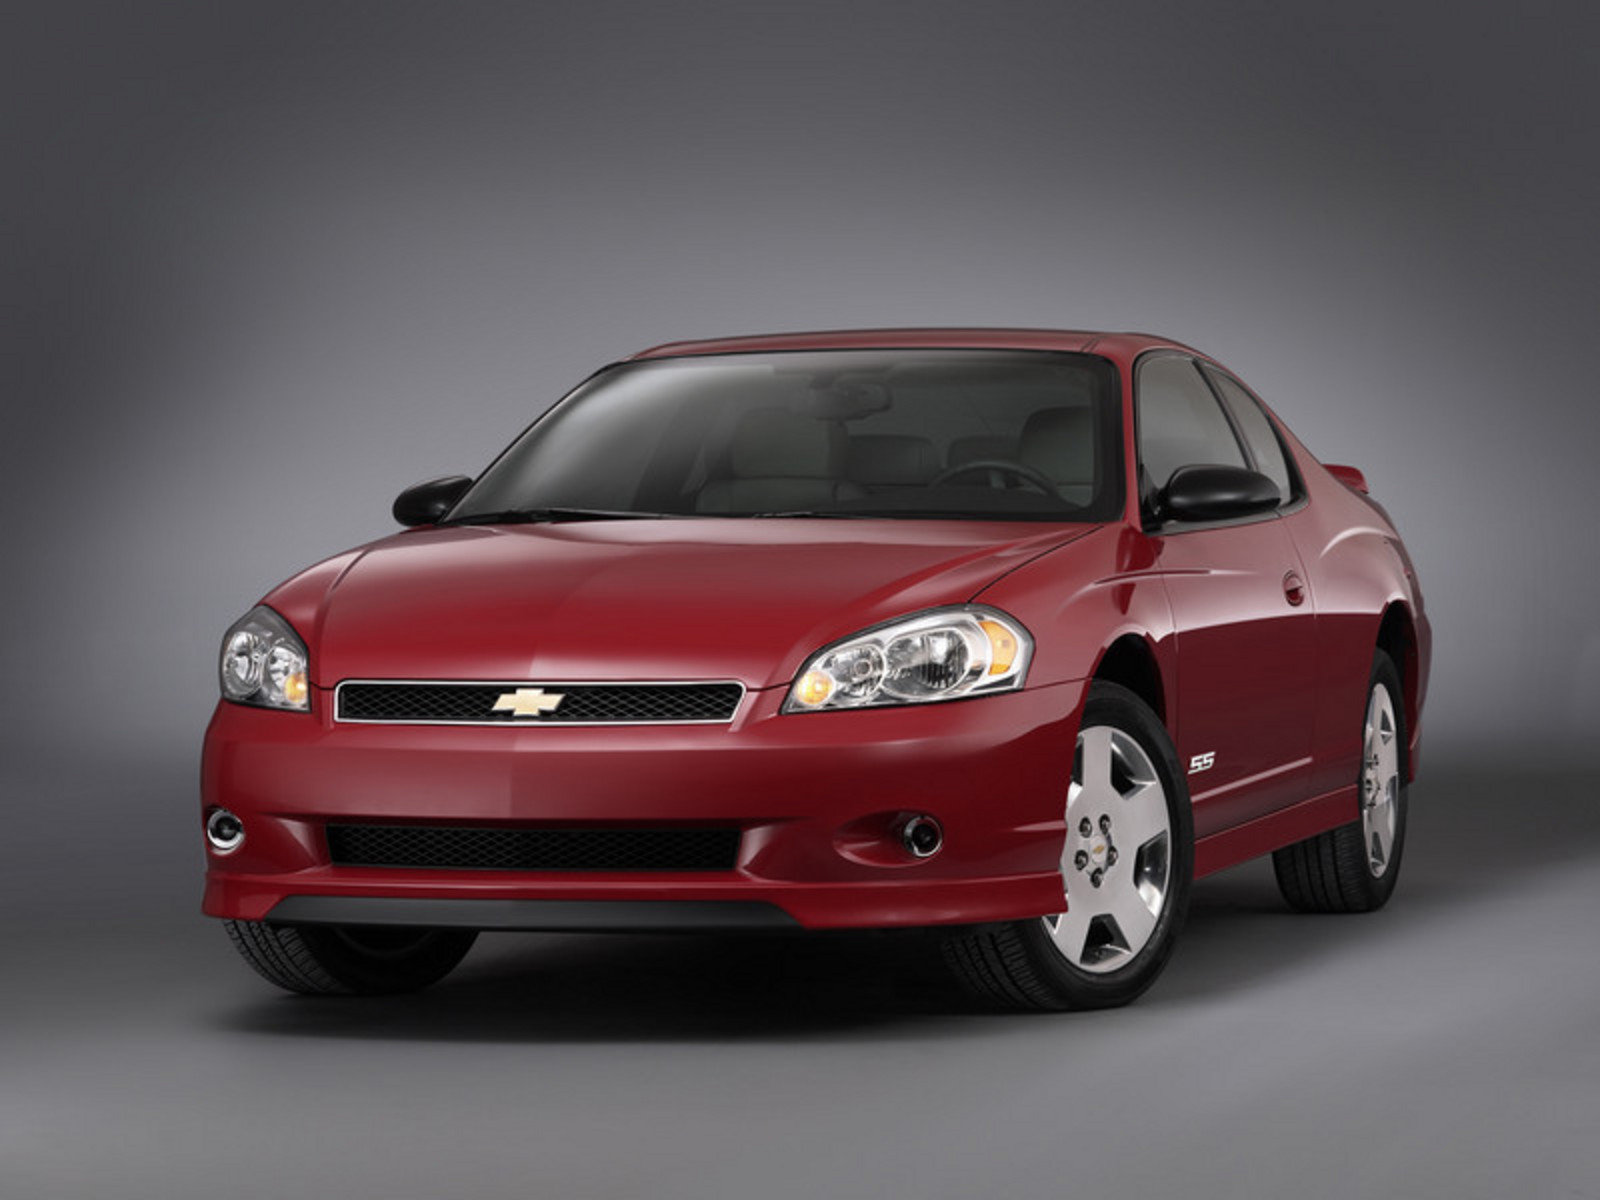 2006 Chevrolet Monte Carlo Ss Review